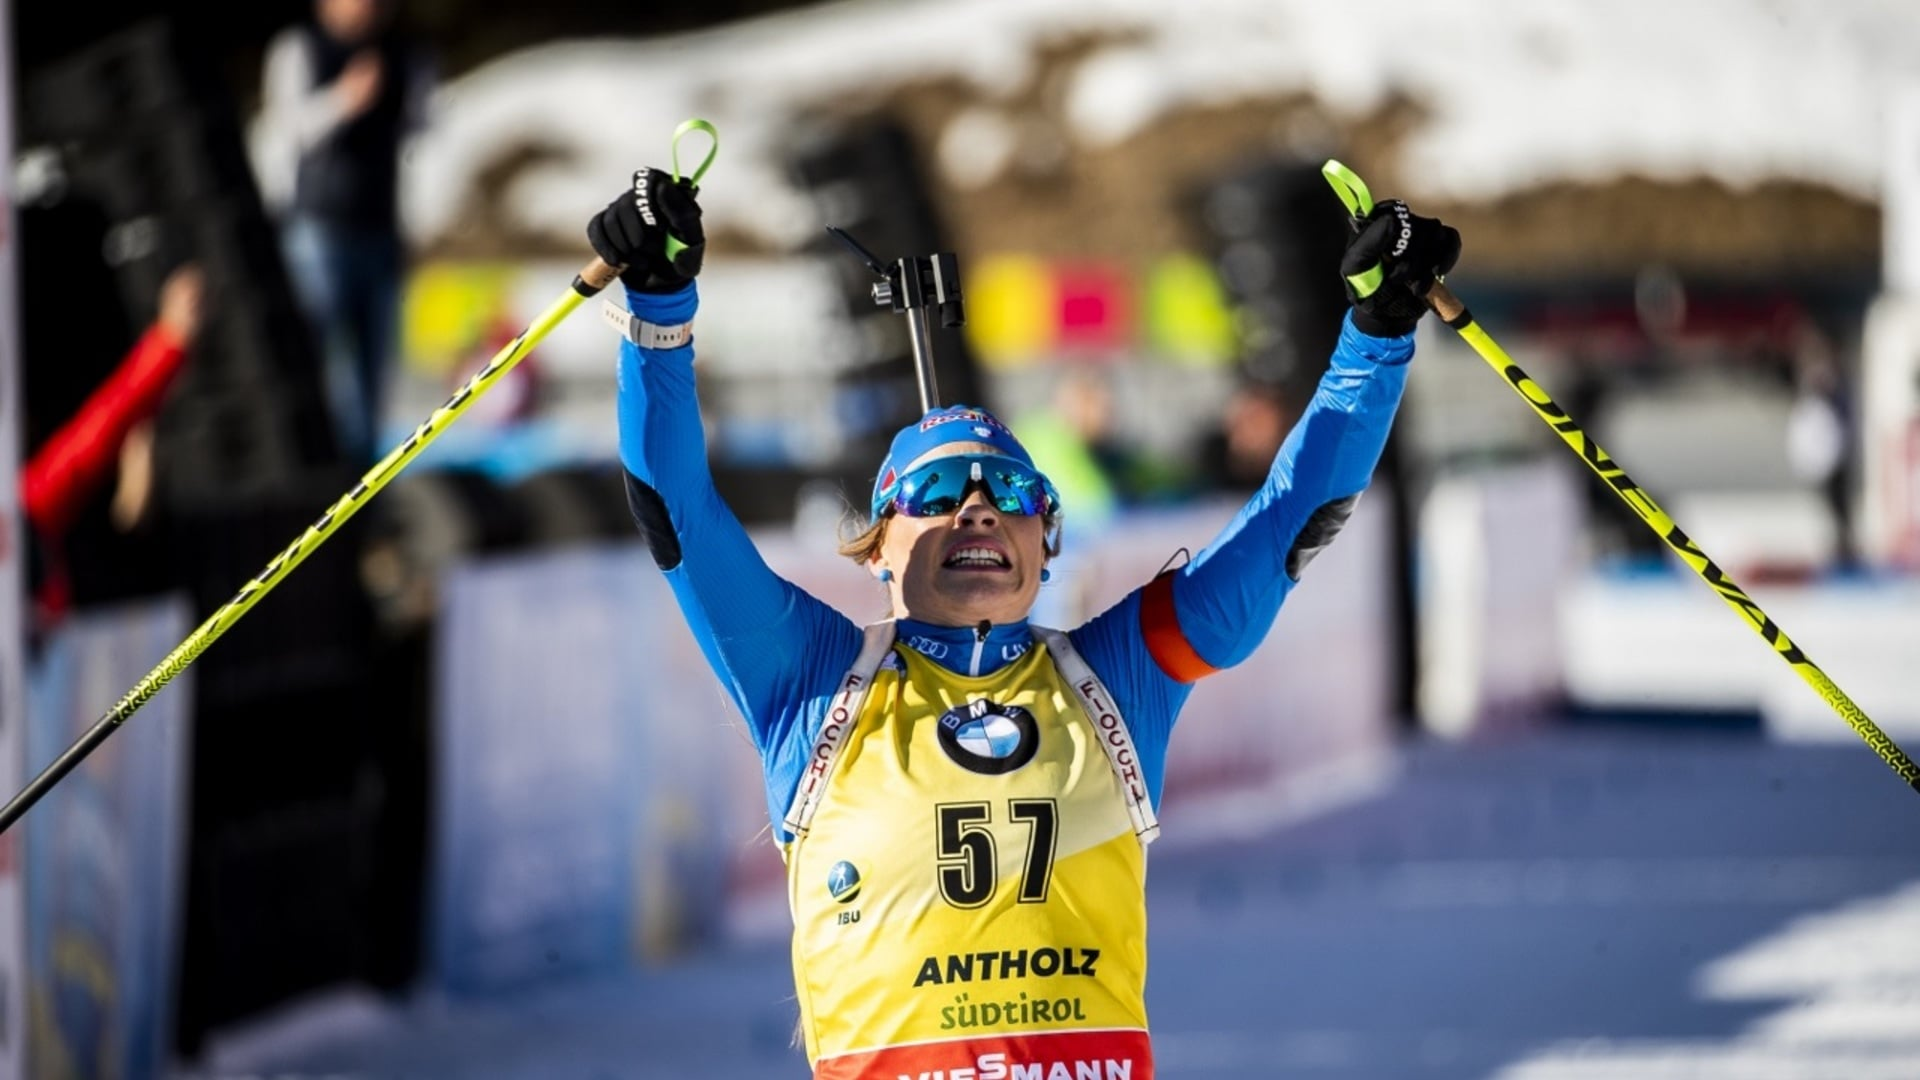 18.02.2020 - Dorothea Wierer's Anterselva fairy tale continues